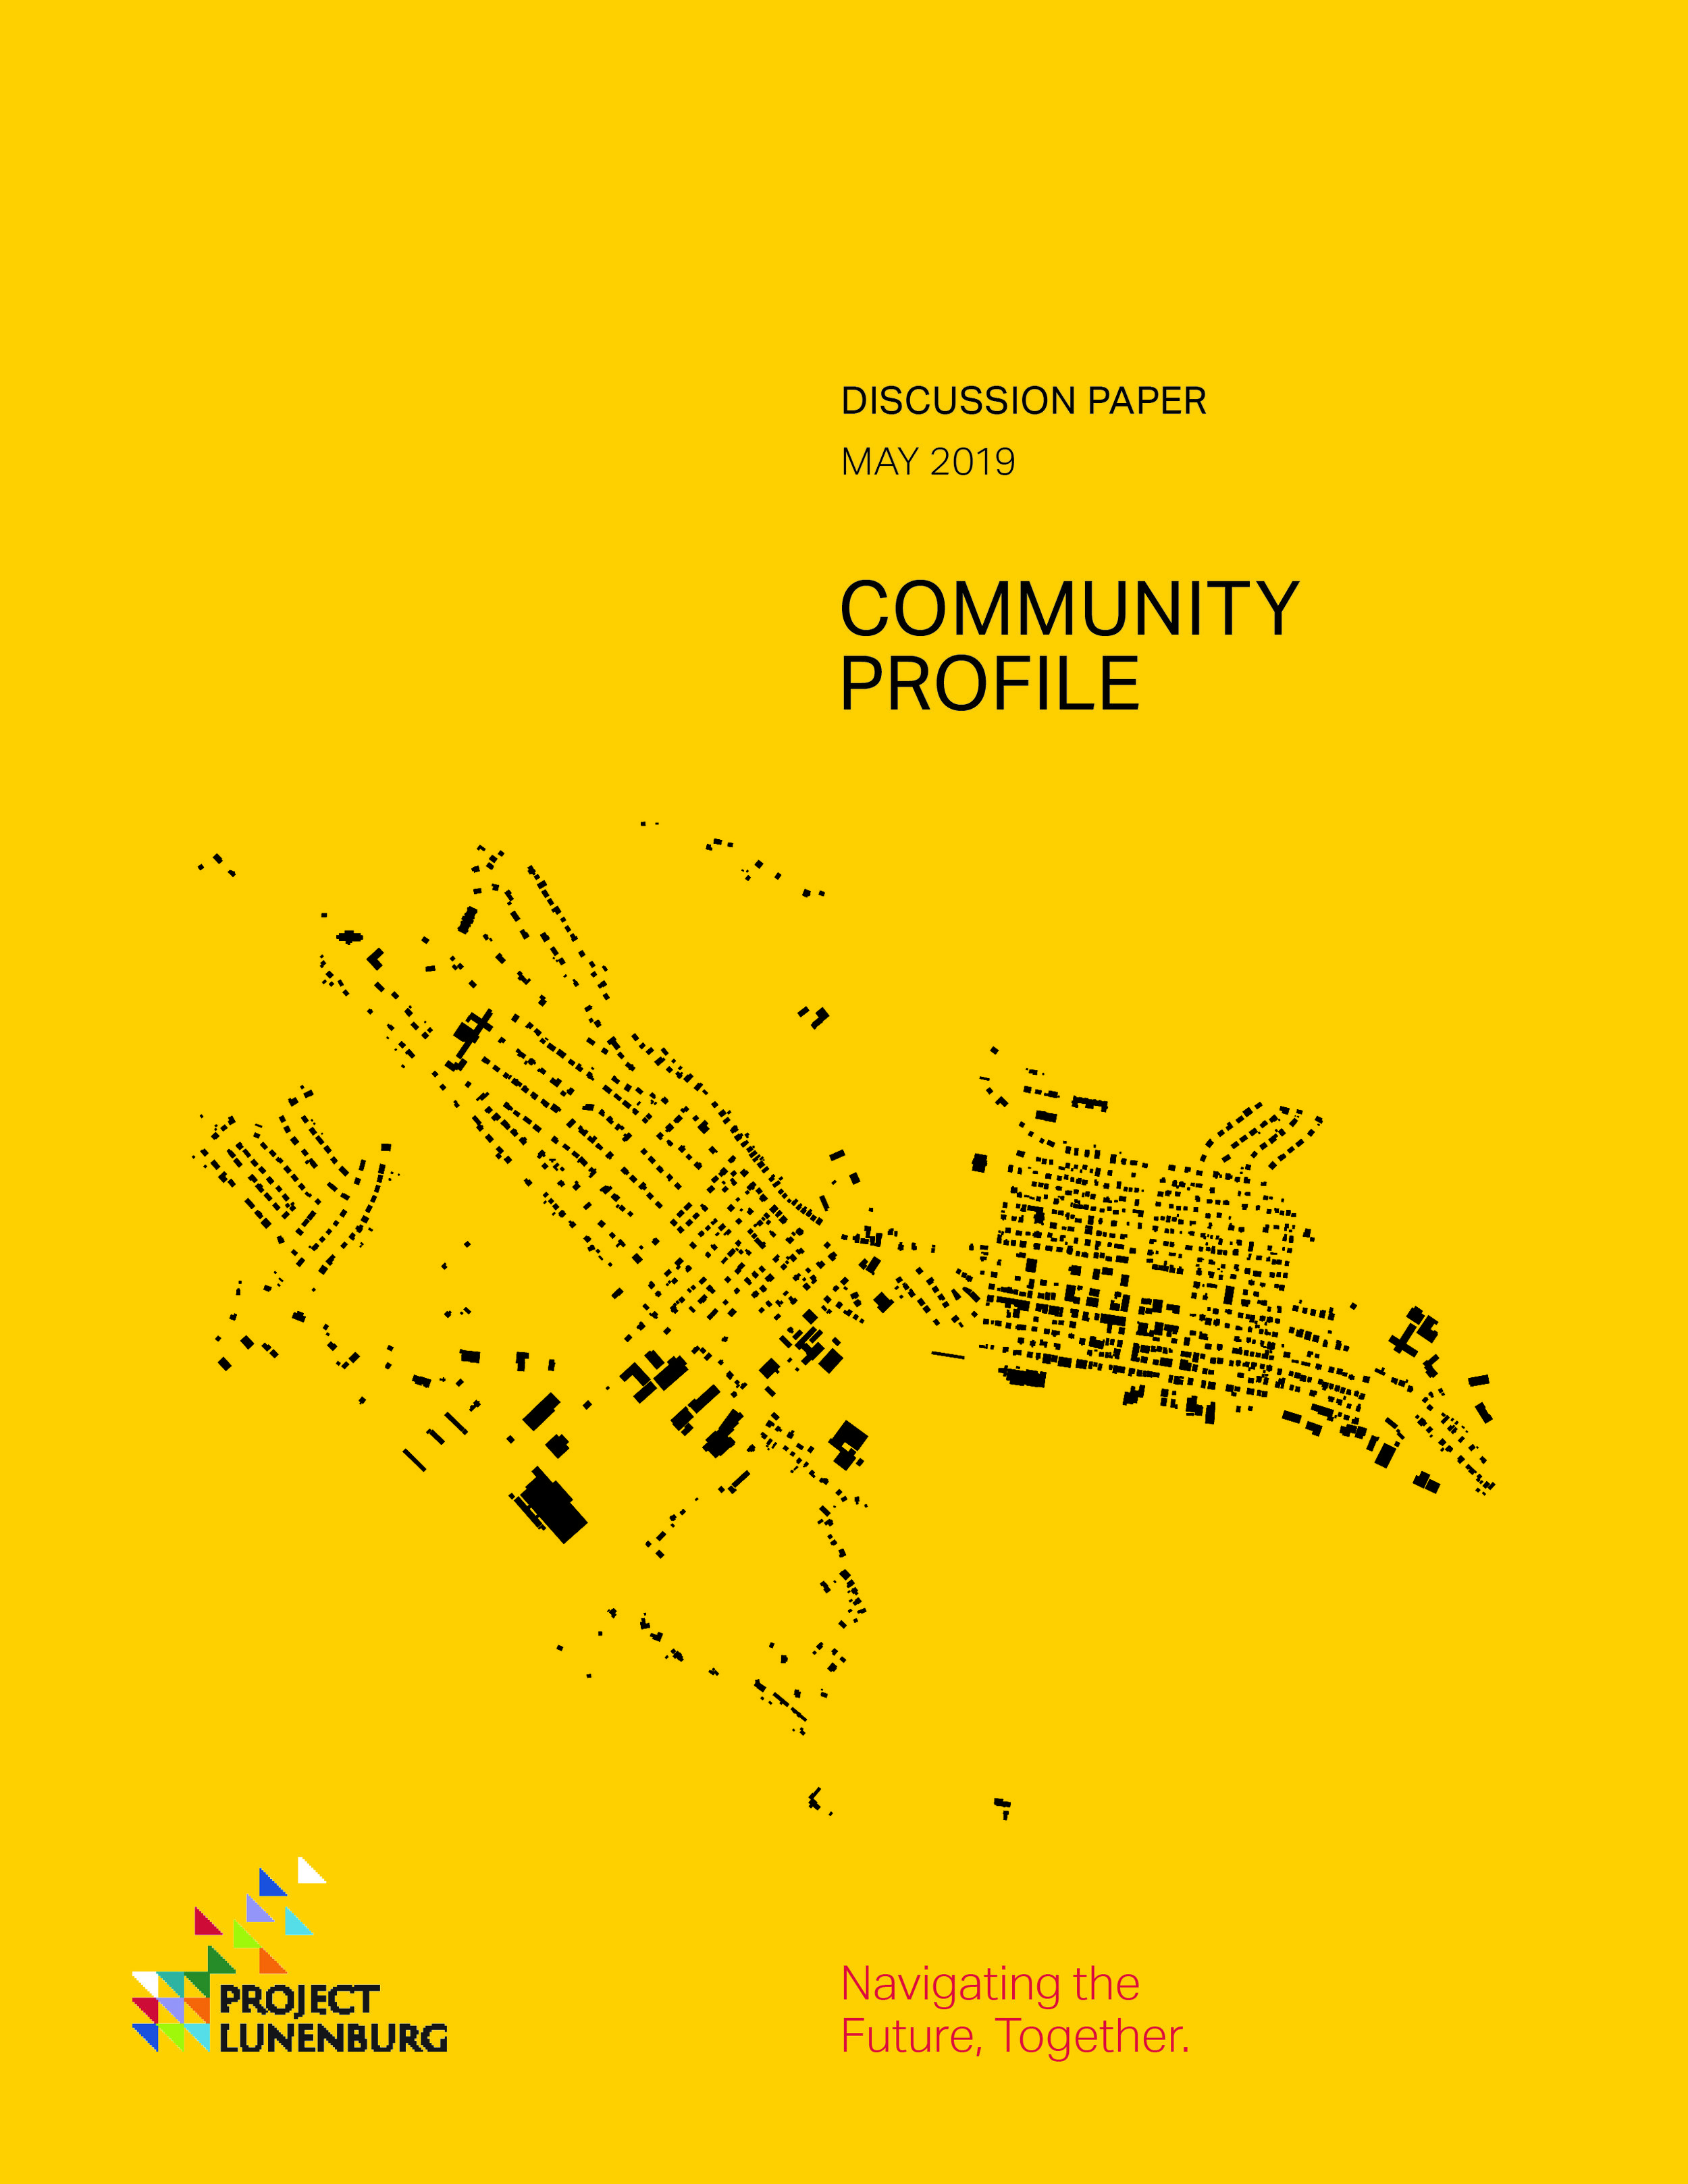 Discussion Paper: Community Profile  This paper looks at the past and current demographic context for the community. Through the trends of the past information can be derived on housing, infrastructure, recreation, and more.